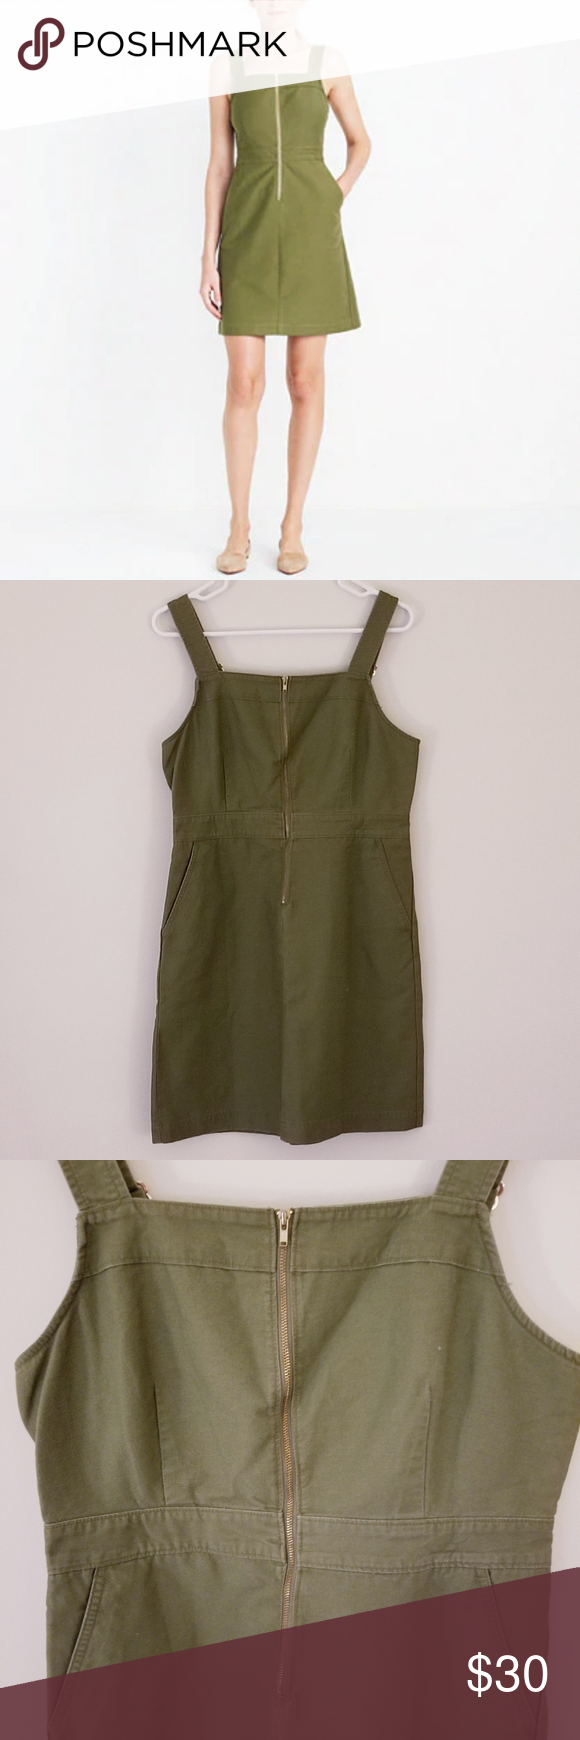 Hp Nwt J Crew Factory Olive Green Overall Dress In 2020 Year Round Dresses Overall Dress Clothes Design [ 1740 x 580 Pixel ]